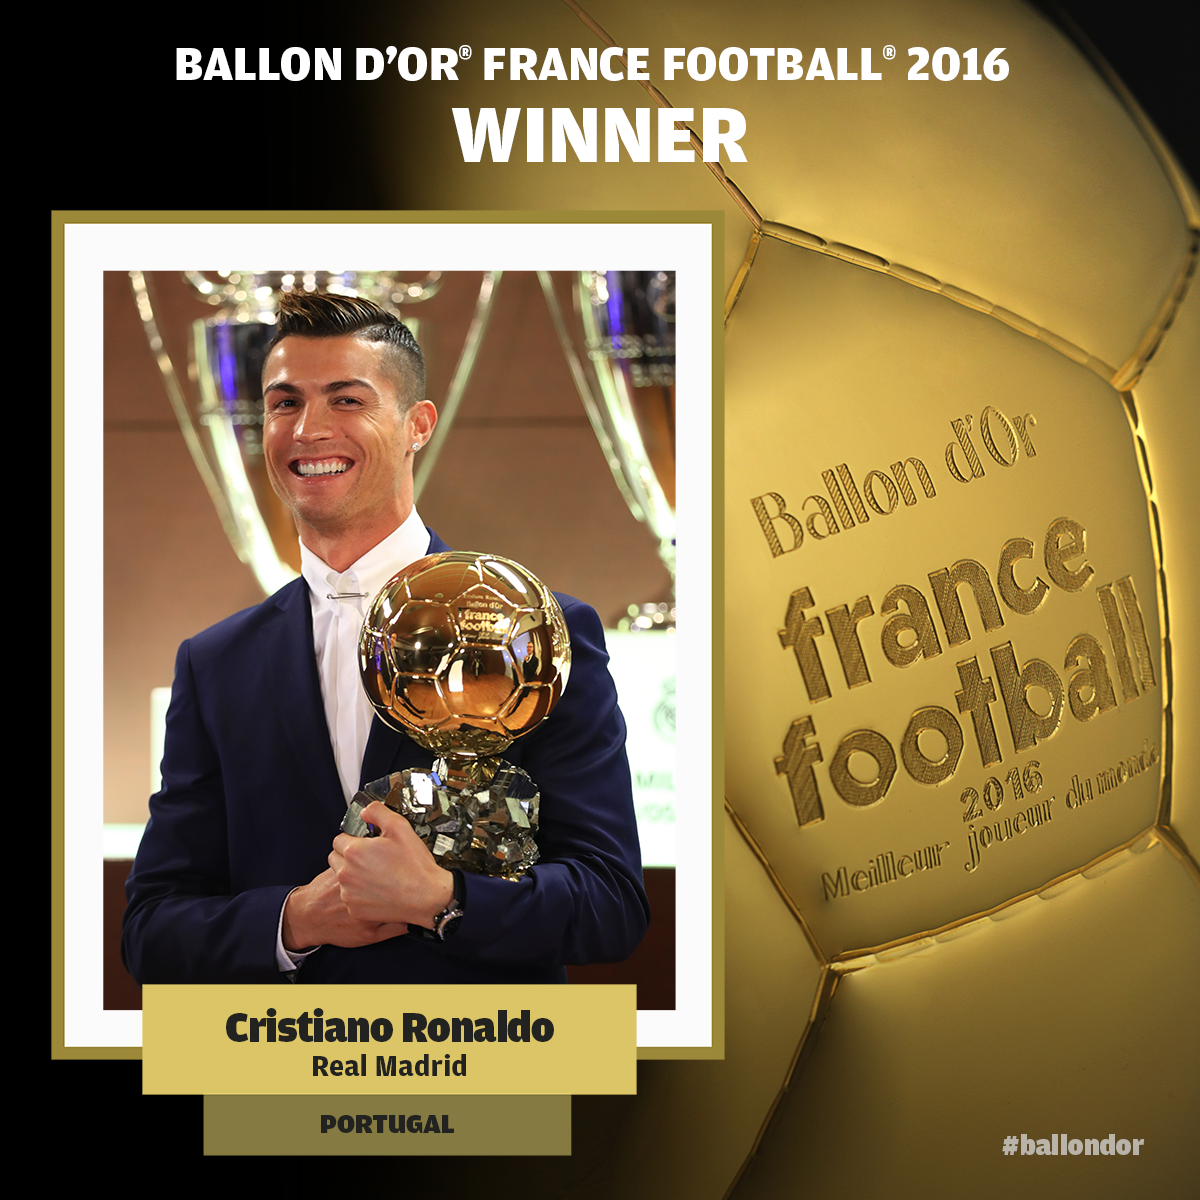 Ballon d'or France Football 2016 winner : CRISTIANO RONALDO  #ballondor